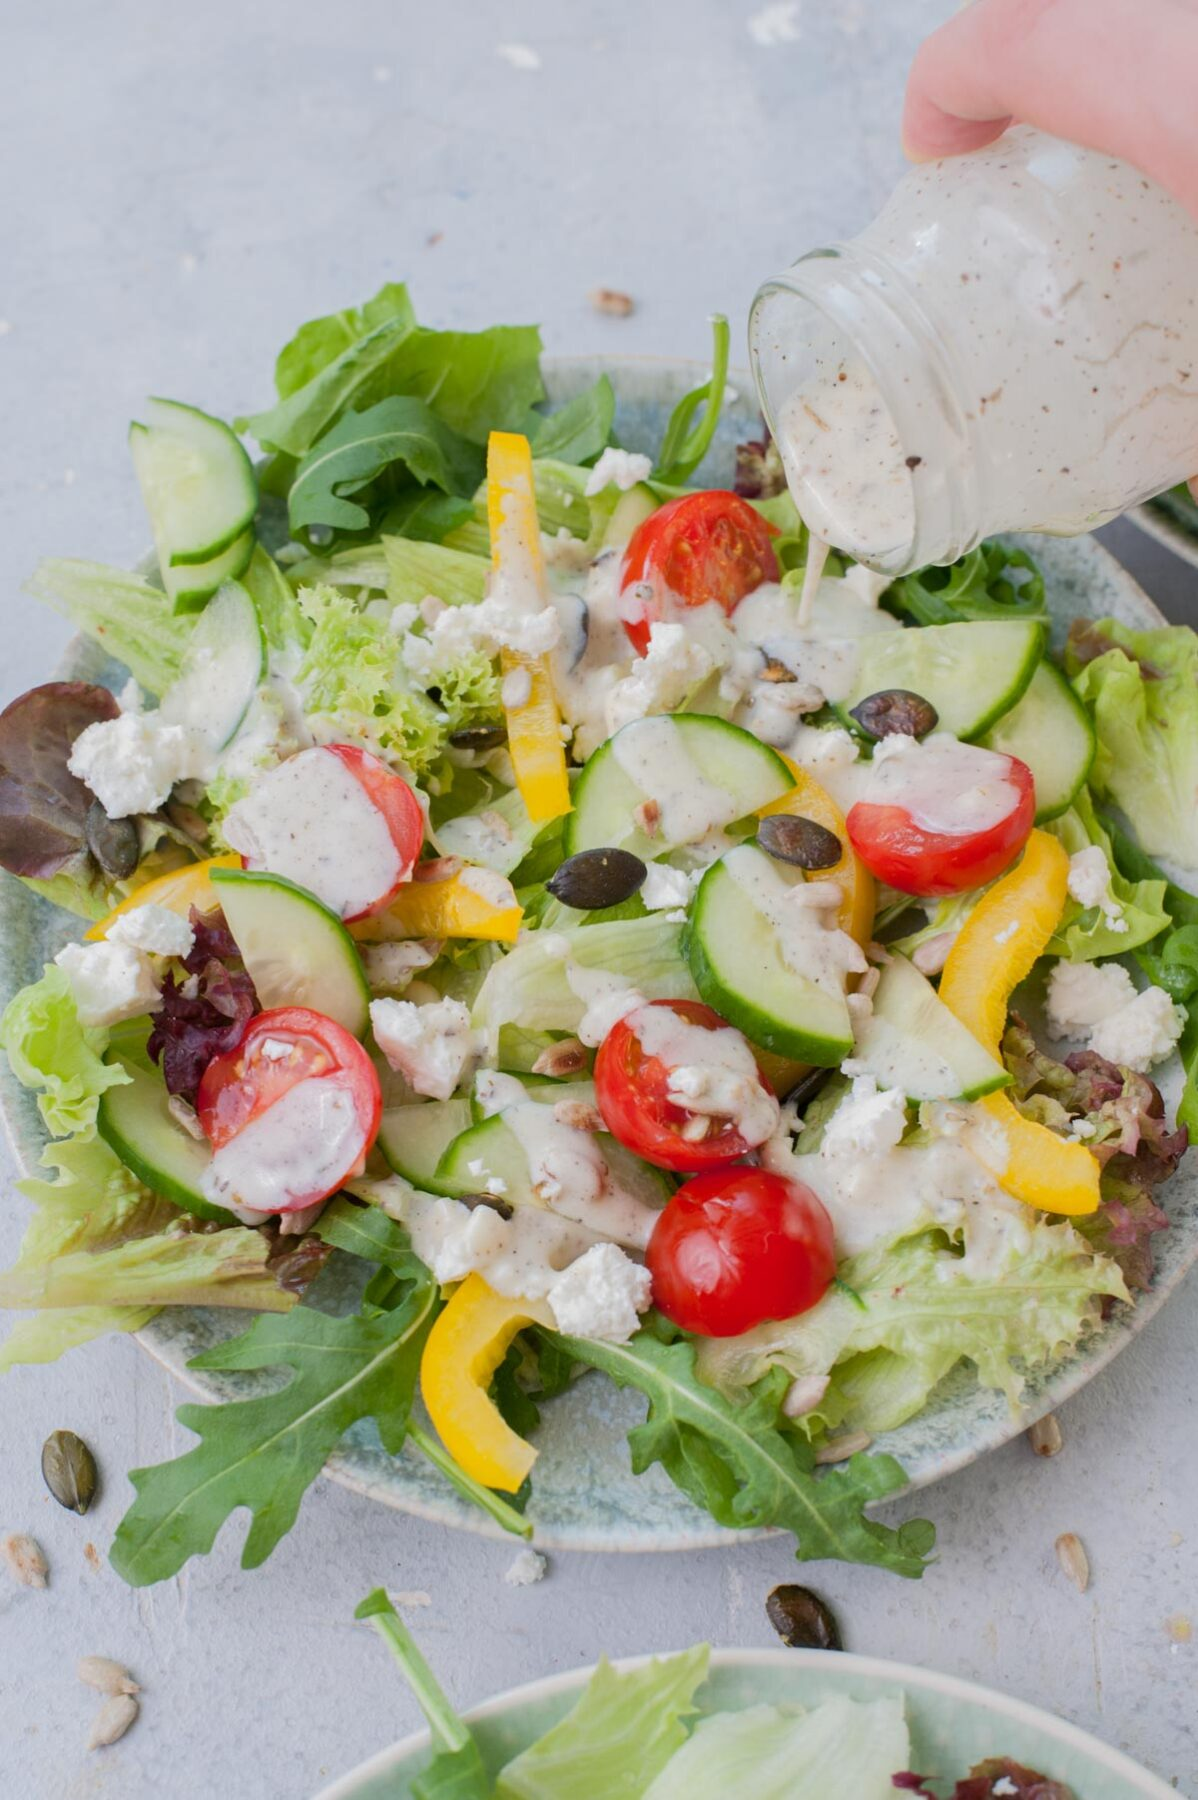 Yogurt dressing is being poured over lettuce and veggies on a green plate.